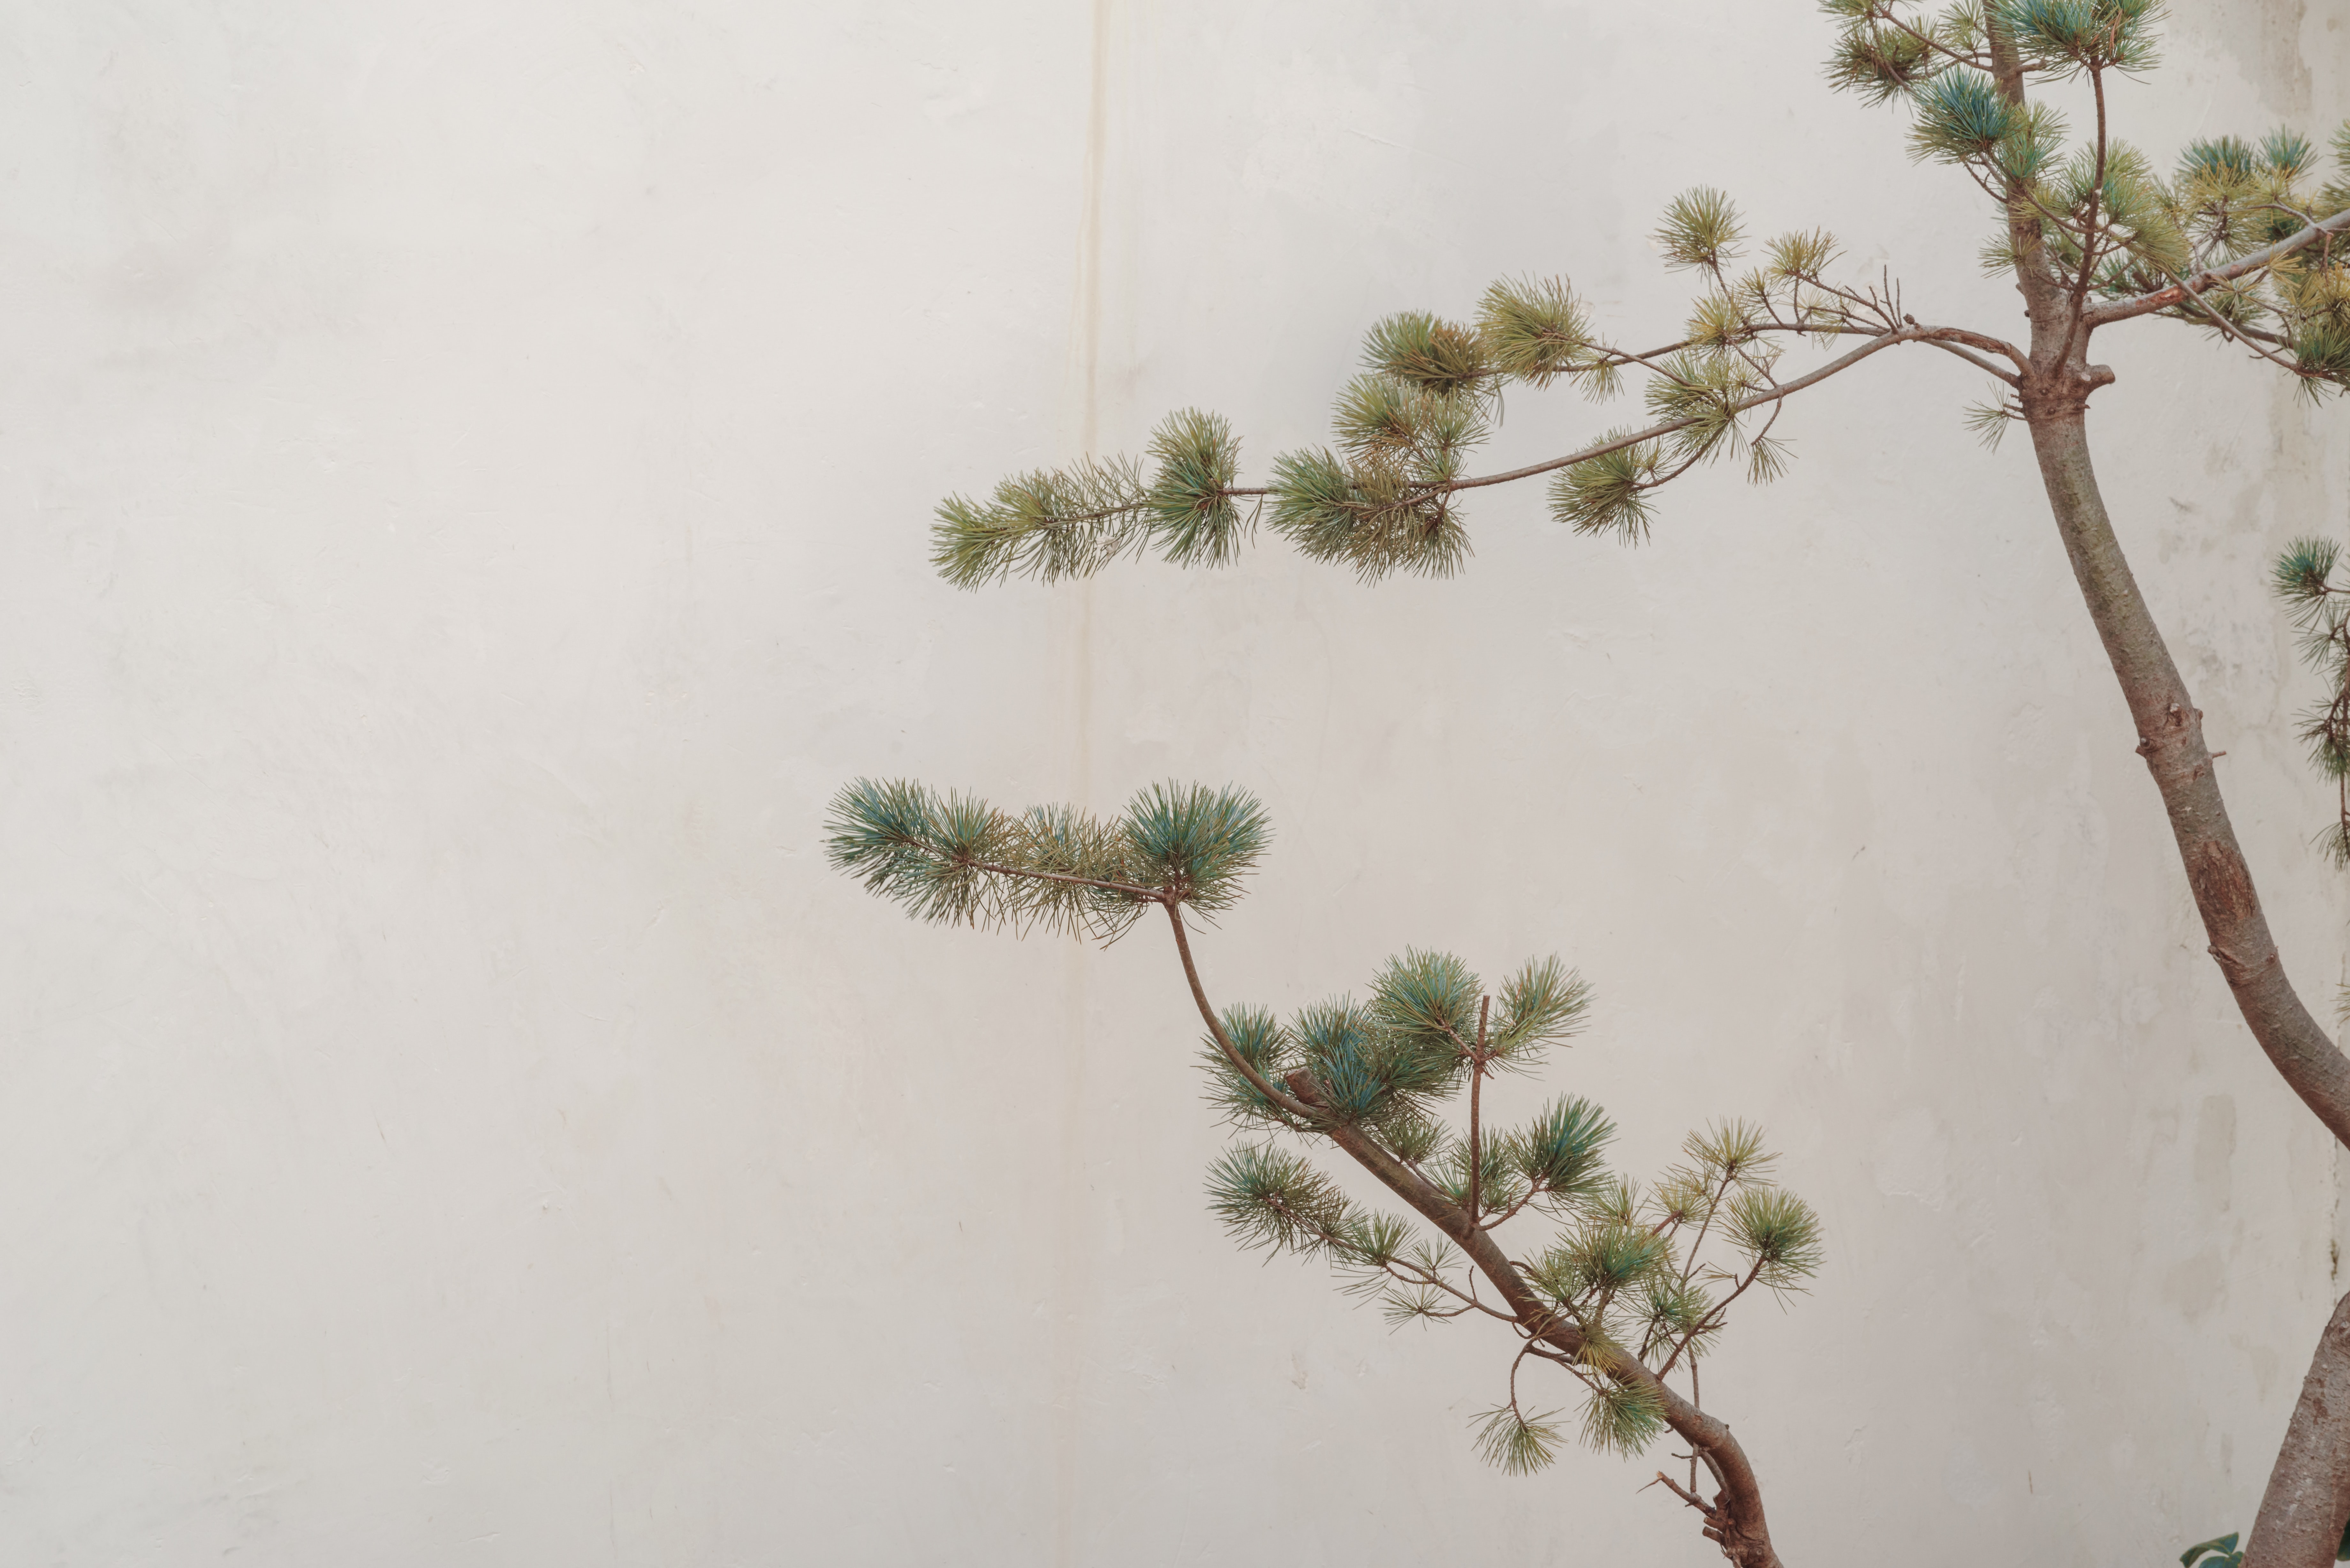 green tree beside white wall